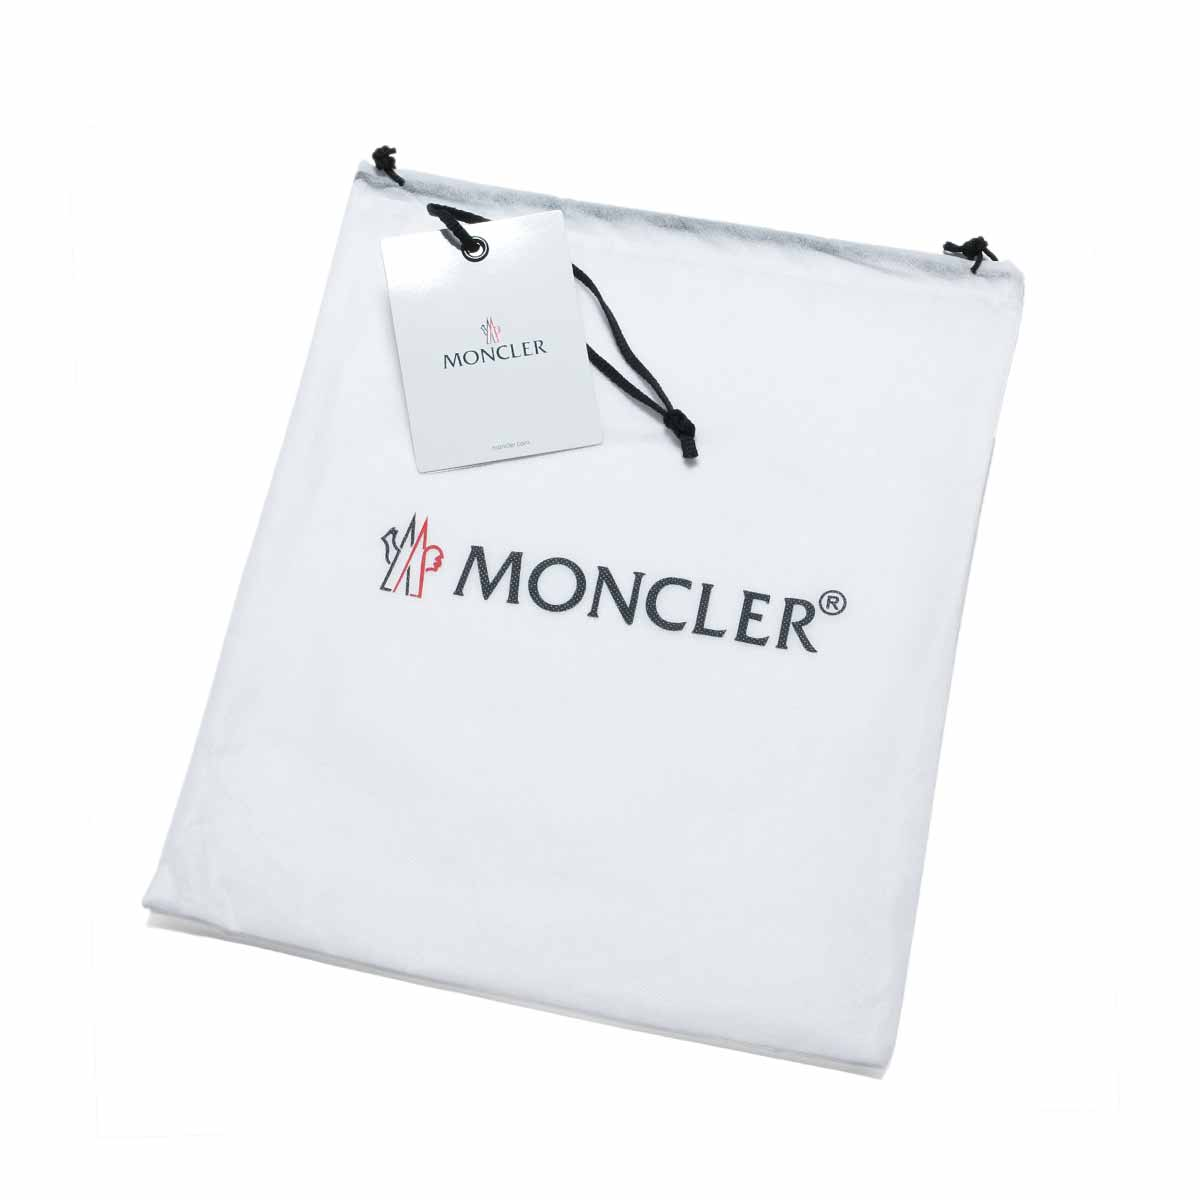 MONCLER モンクレール | ニットキャップ